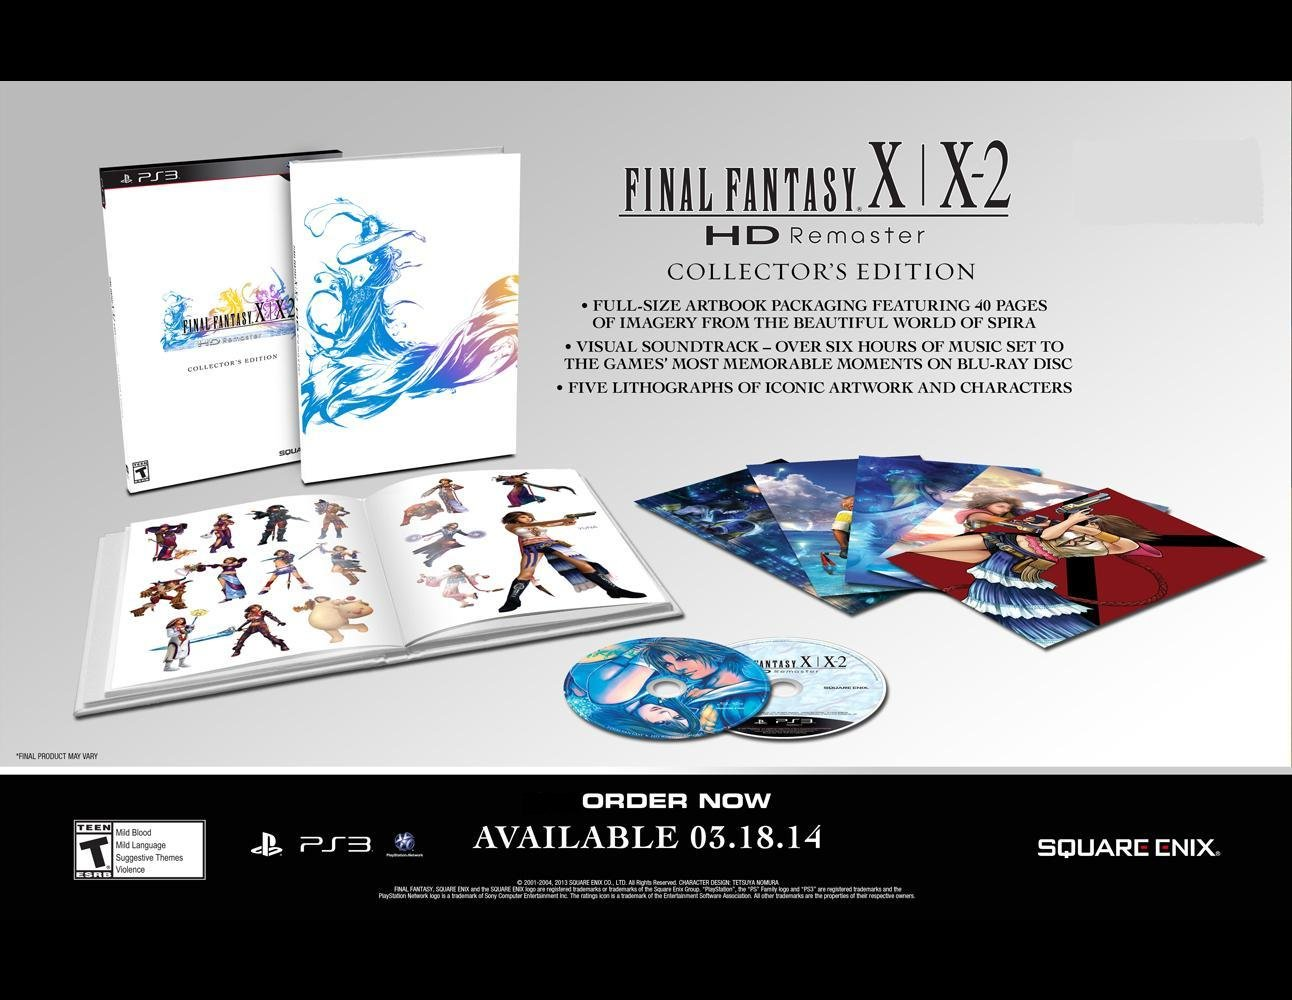 Image final fantasy x-x-2 hd remaster limited edition ps4. Jpg.